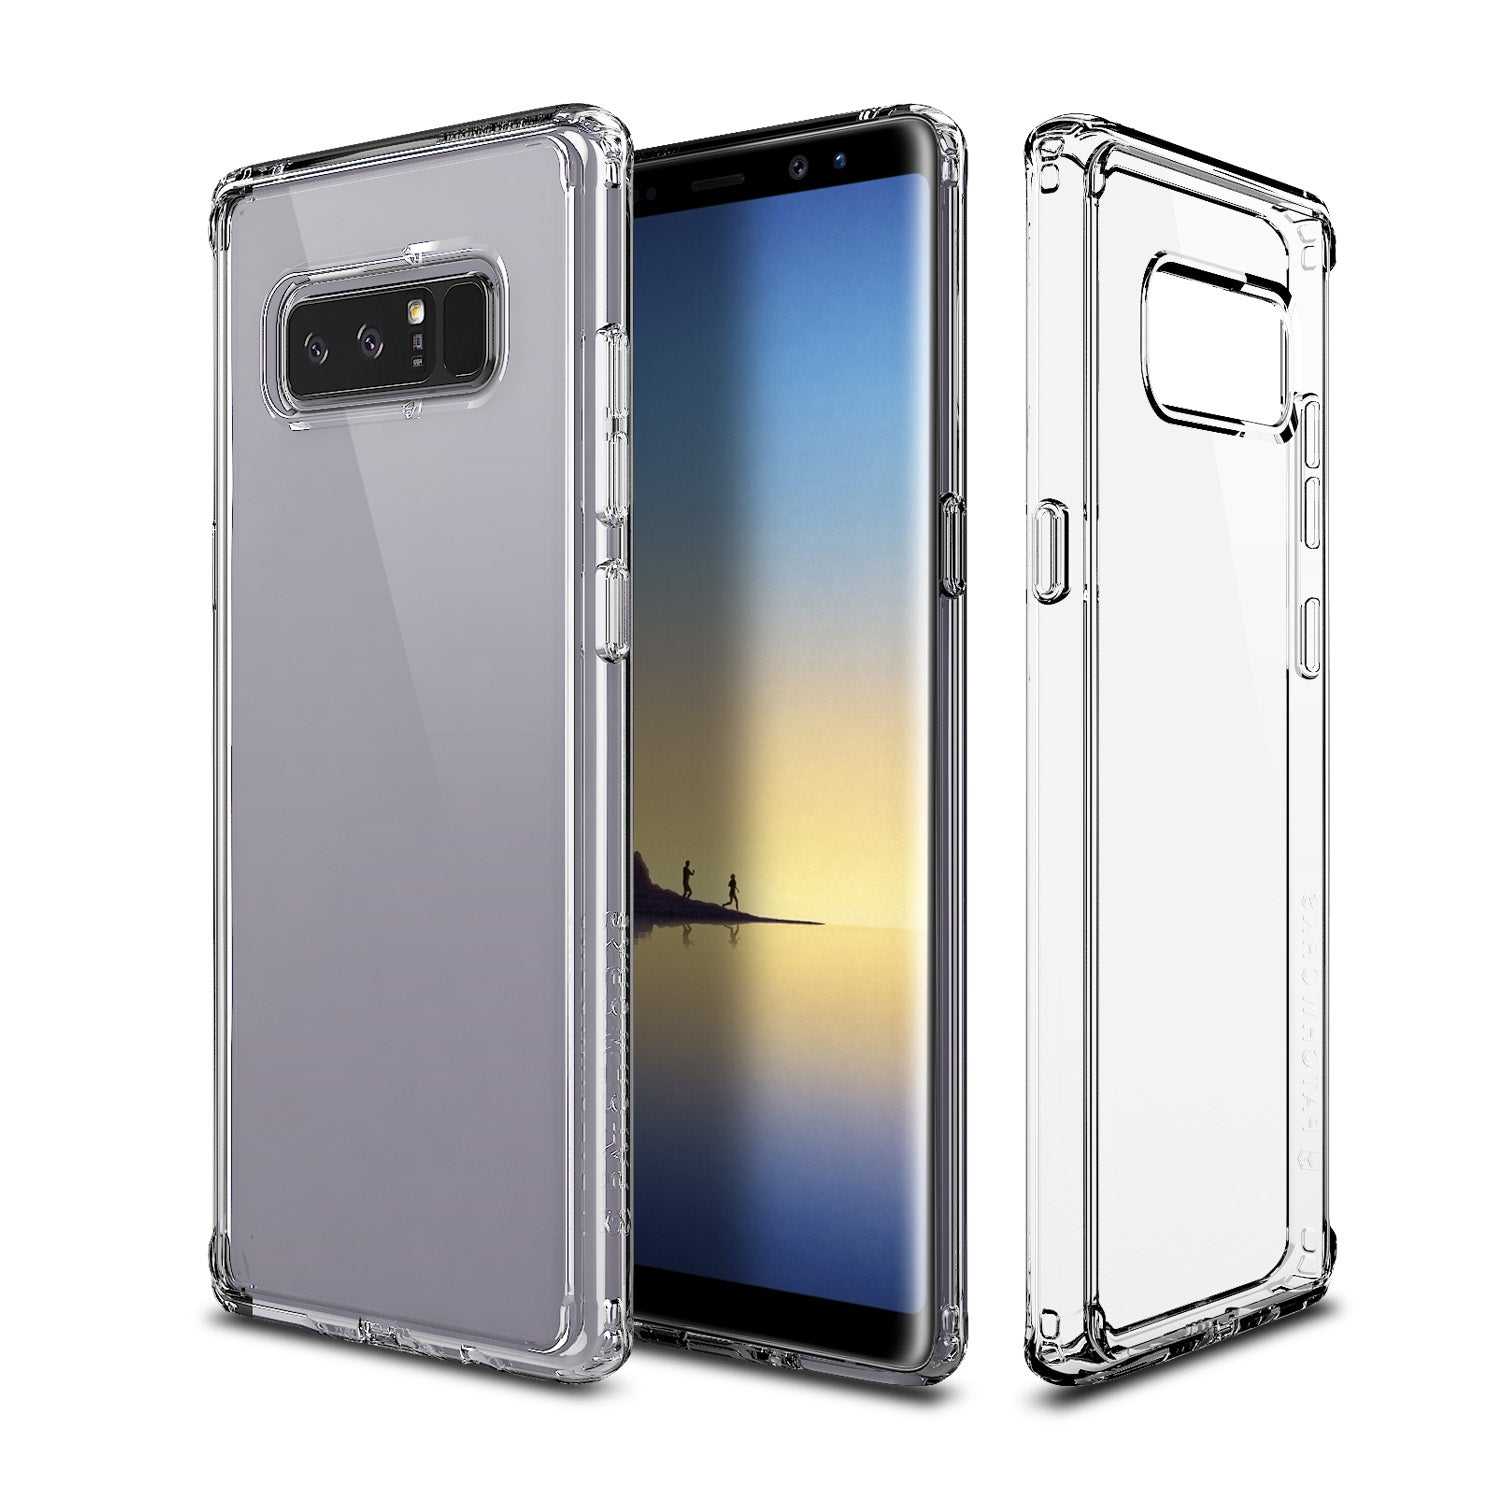 GALAXY NOTE 8 CASE - PURE SHIELD (Lumina)